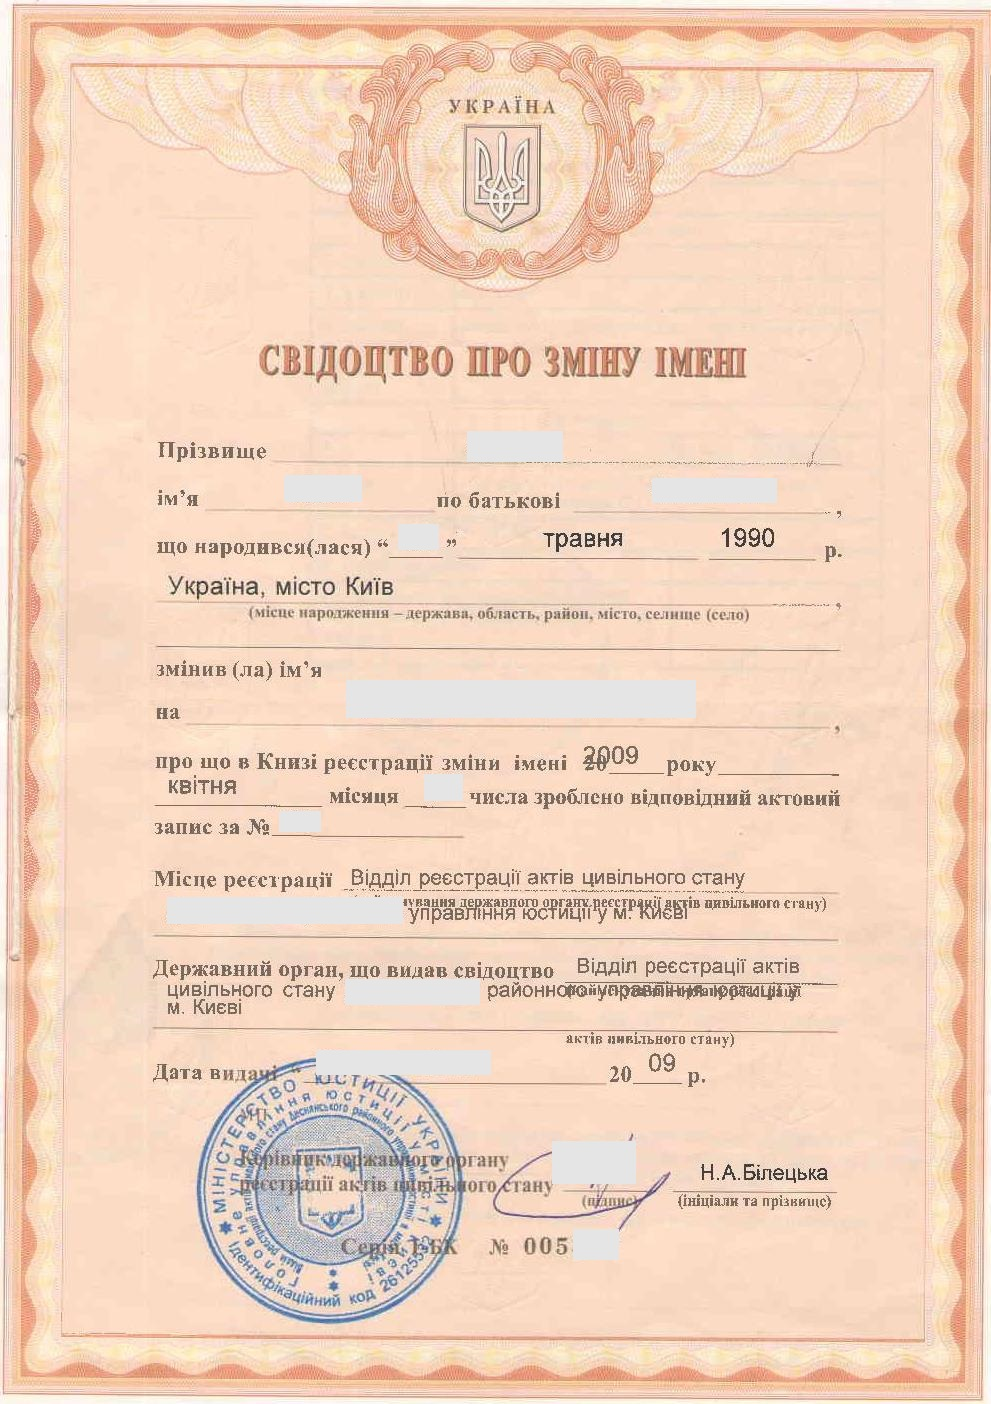 Obtaining Certified Copies Of Ukrainian Documents With Apostille